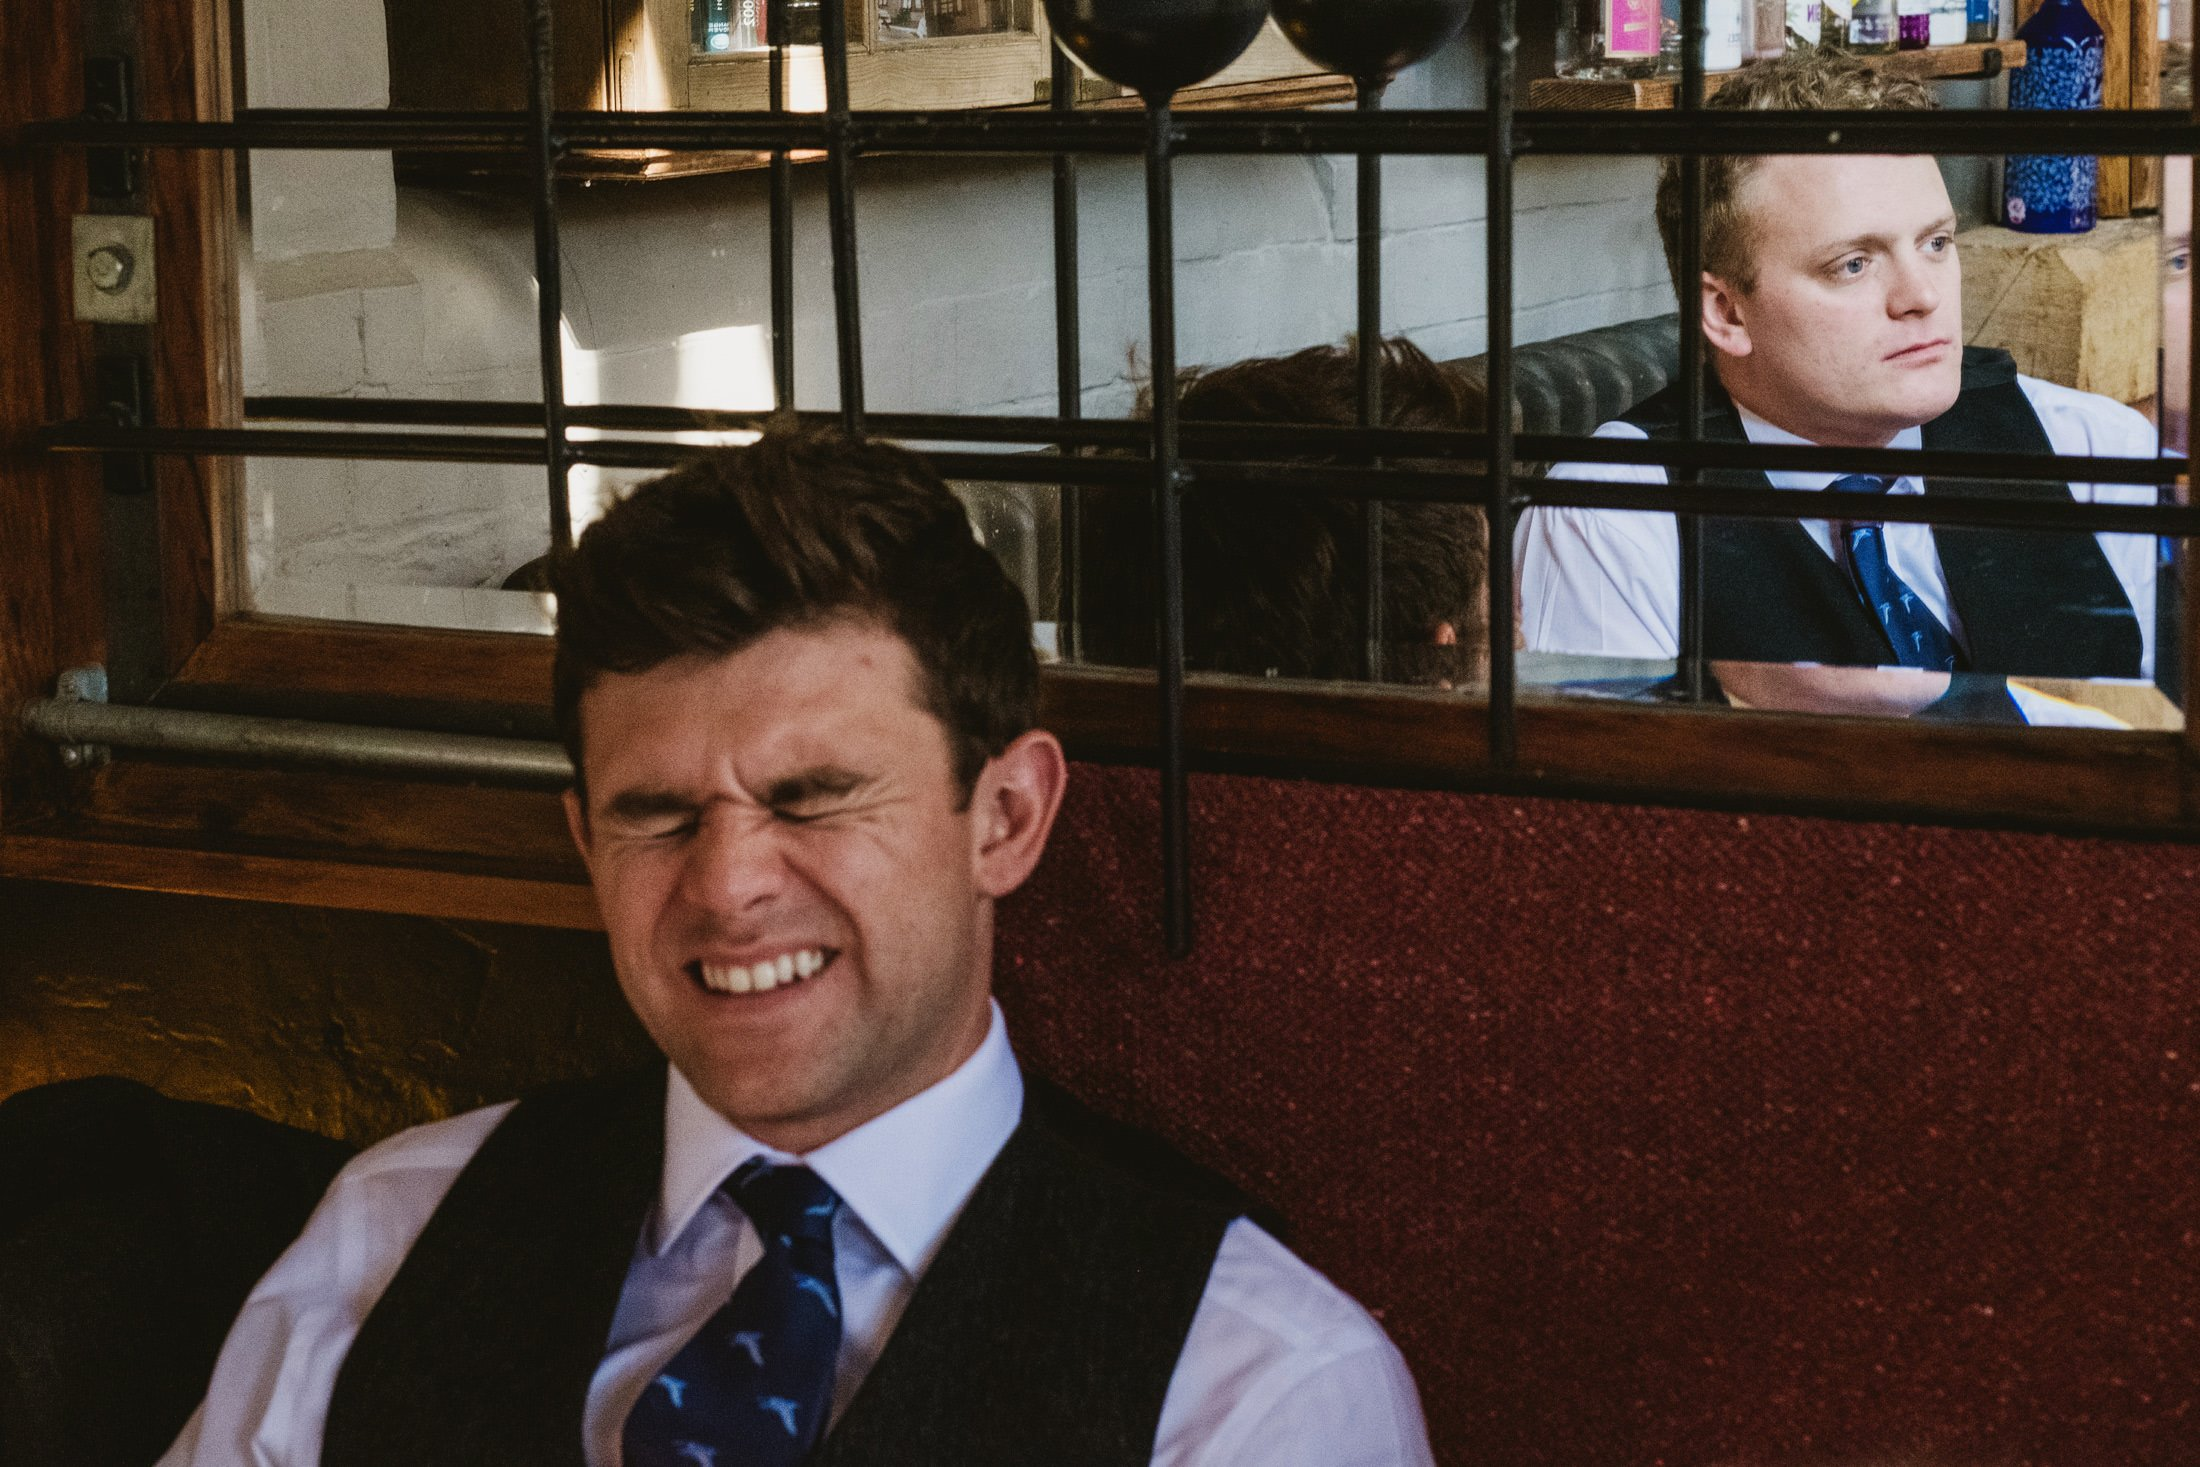 groomsmen, one laughing and one more serious